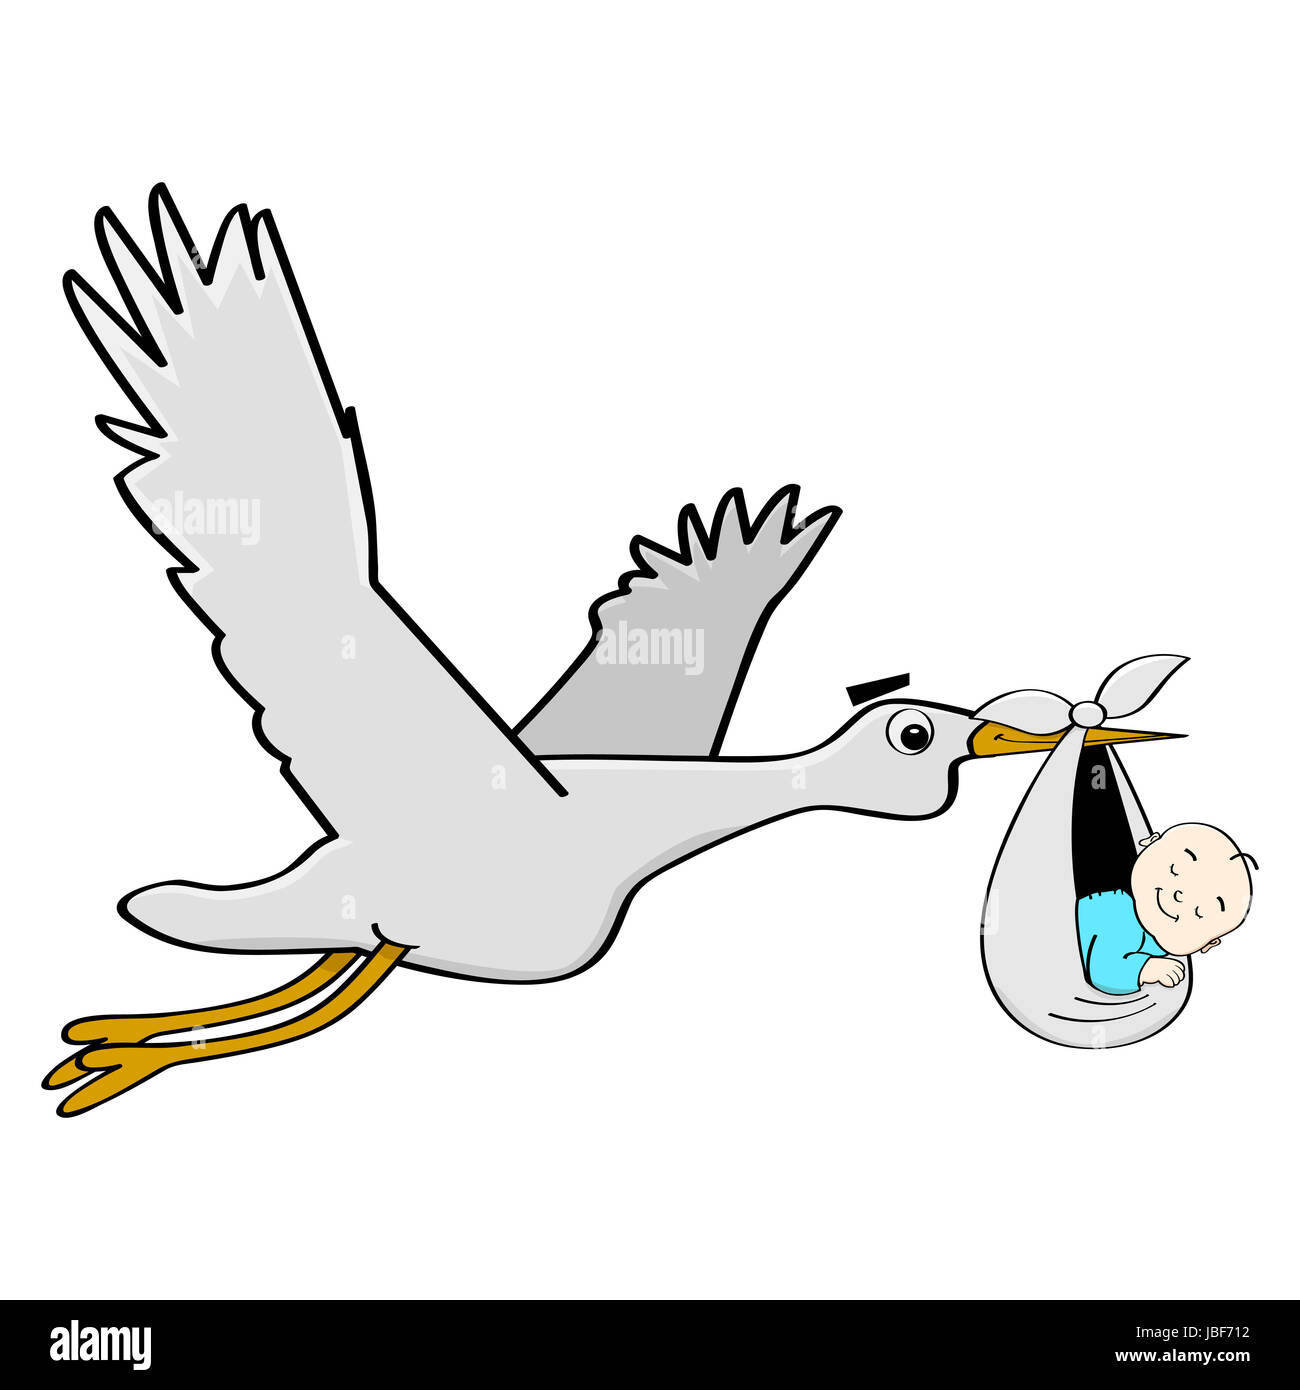 Stork Carrying A Baby Imágenes De Stock & Stork Carrying A Baby ...